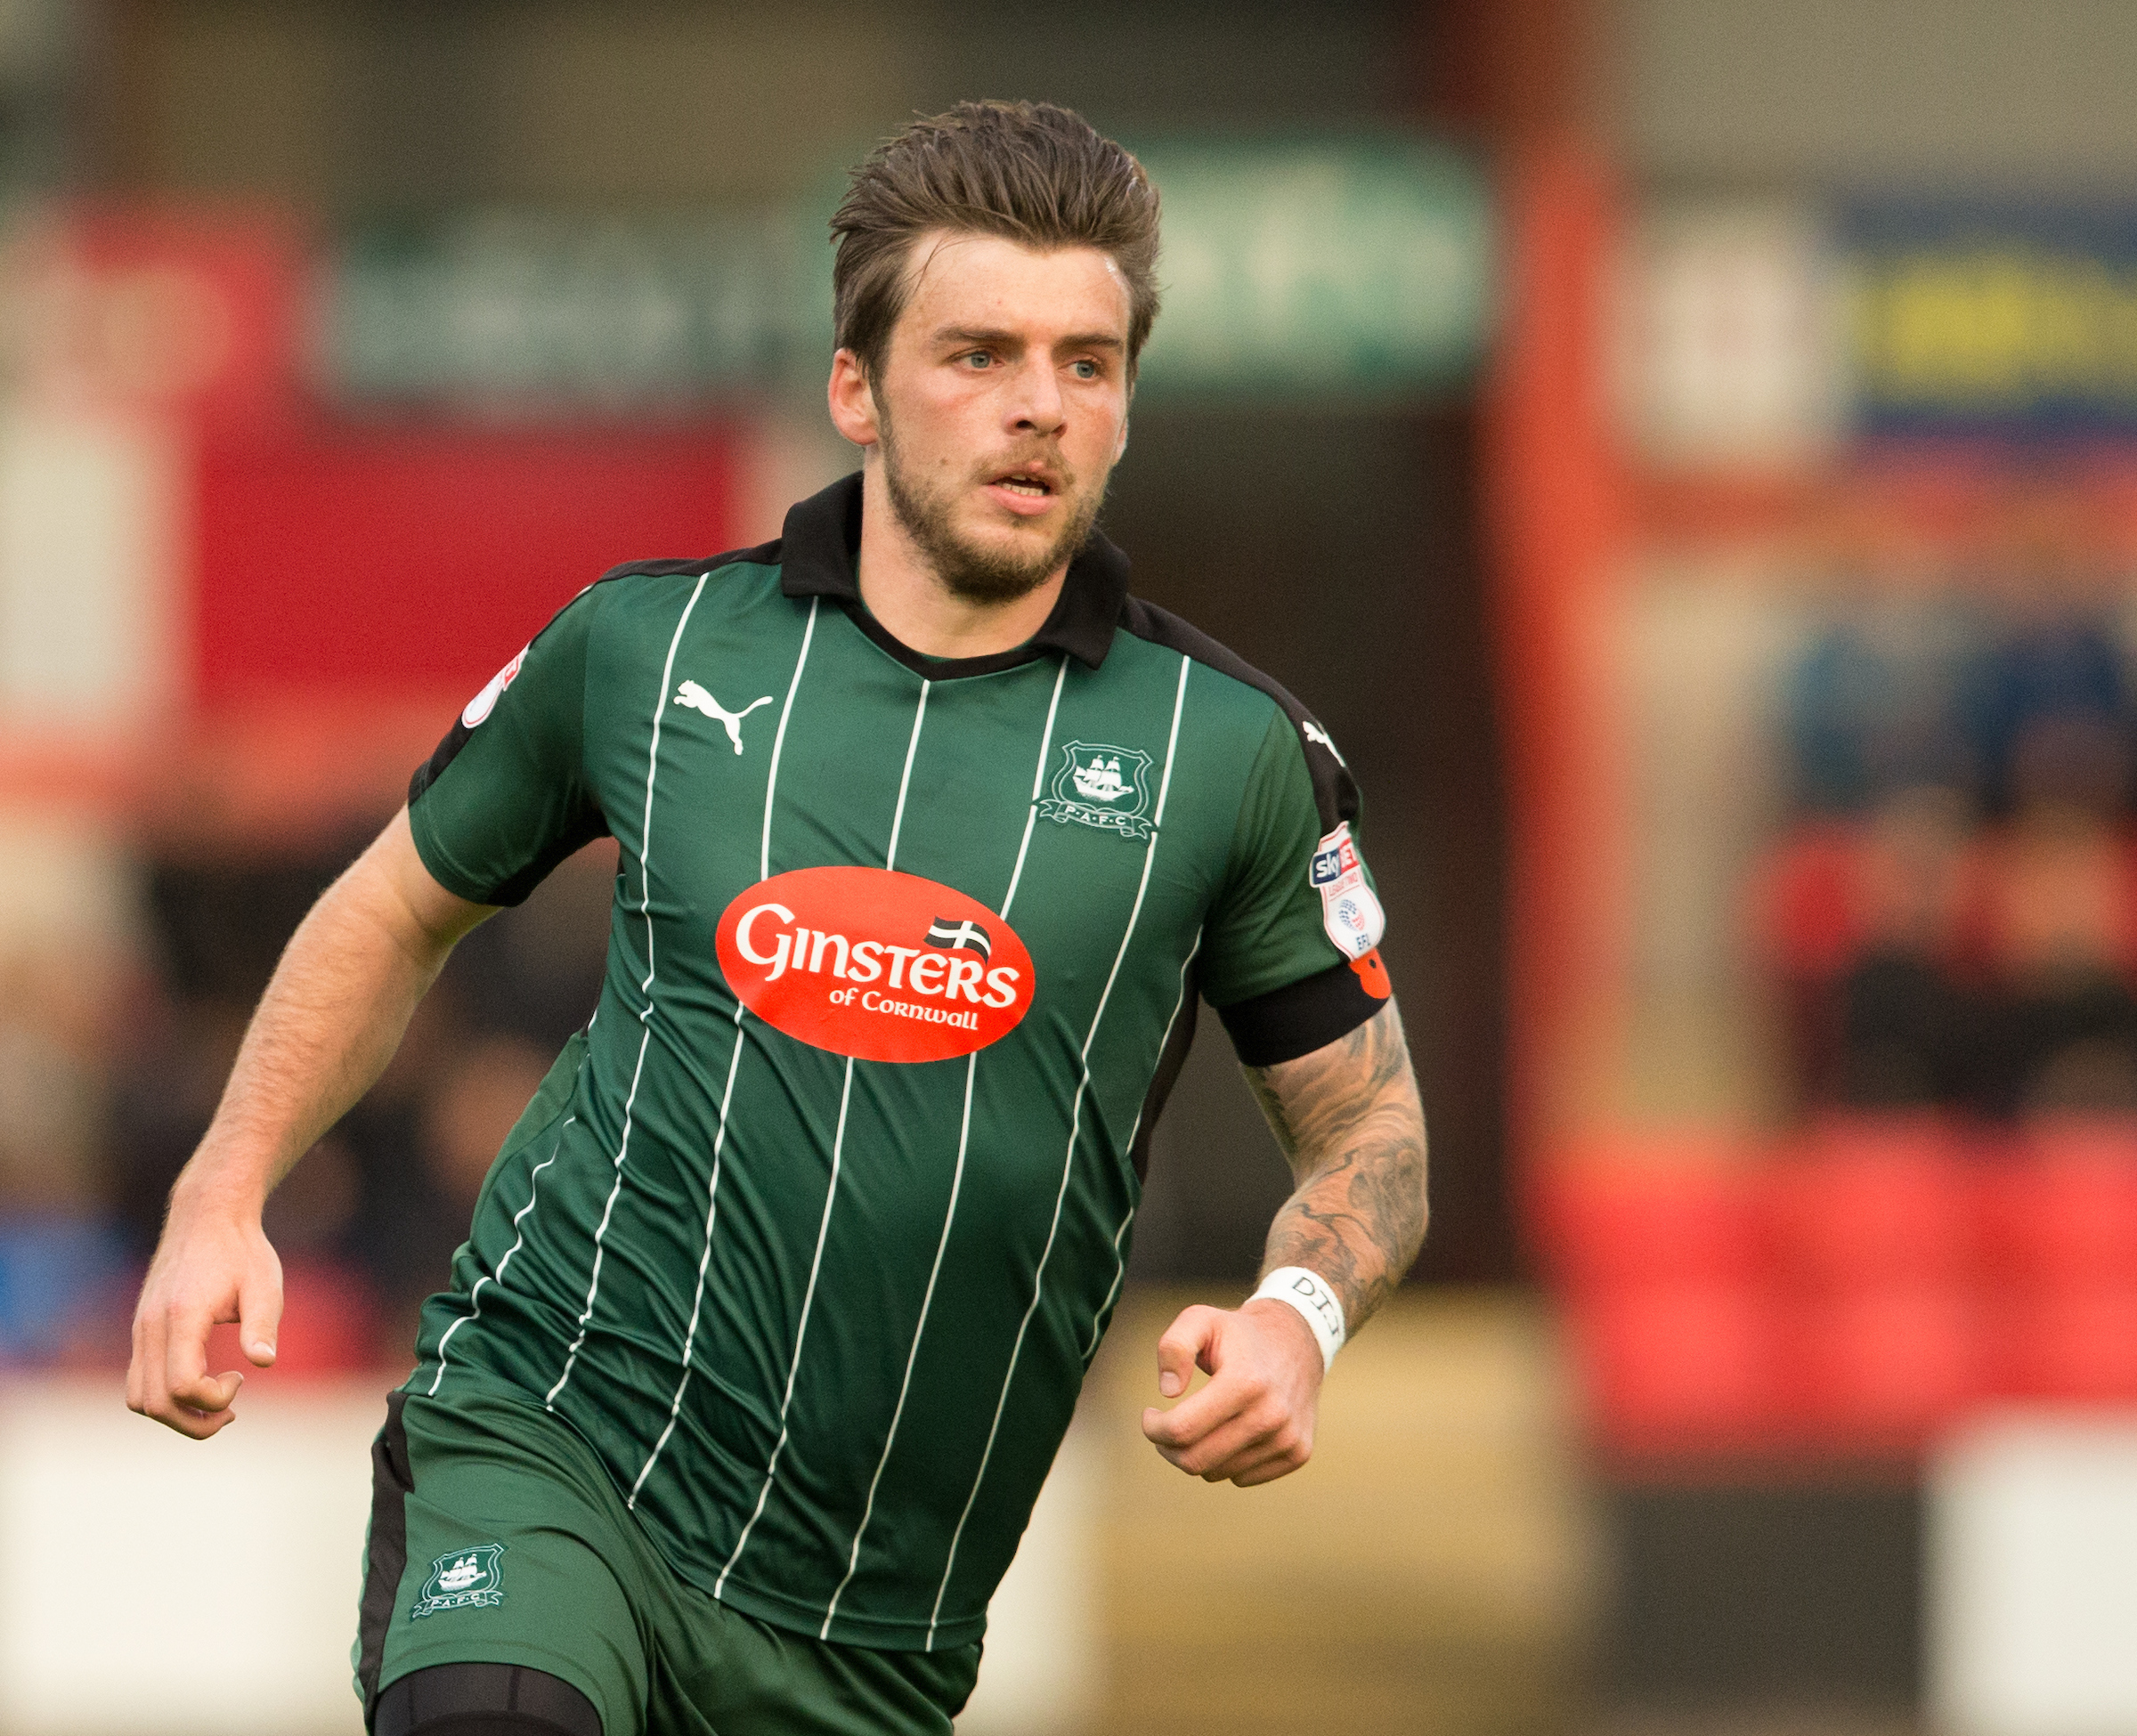 OUT OF ACTION: Suspended Plymouth playmaker Graham Carey